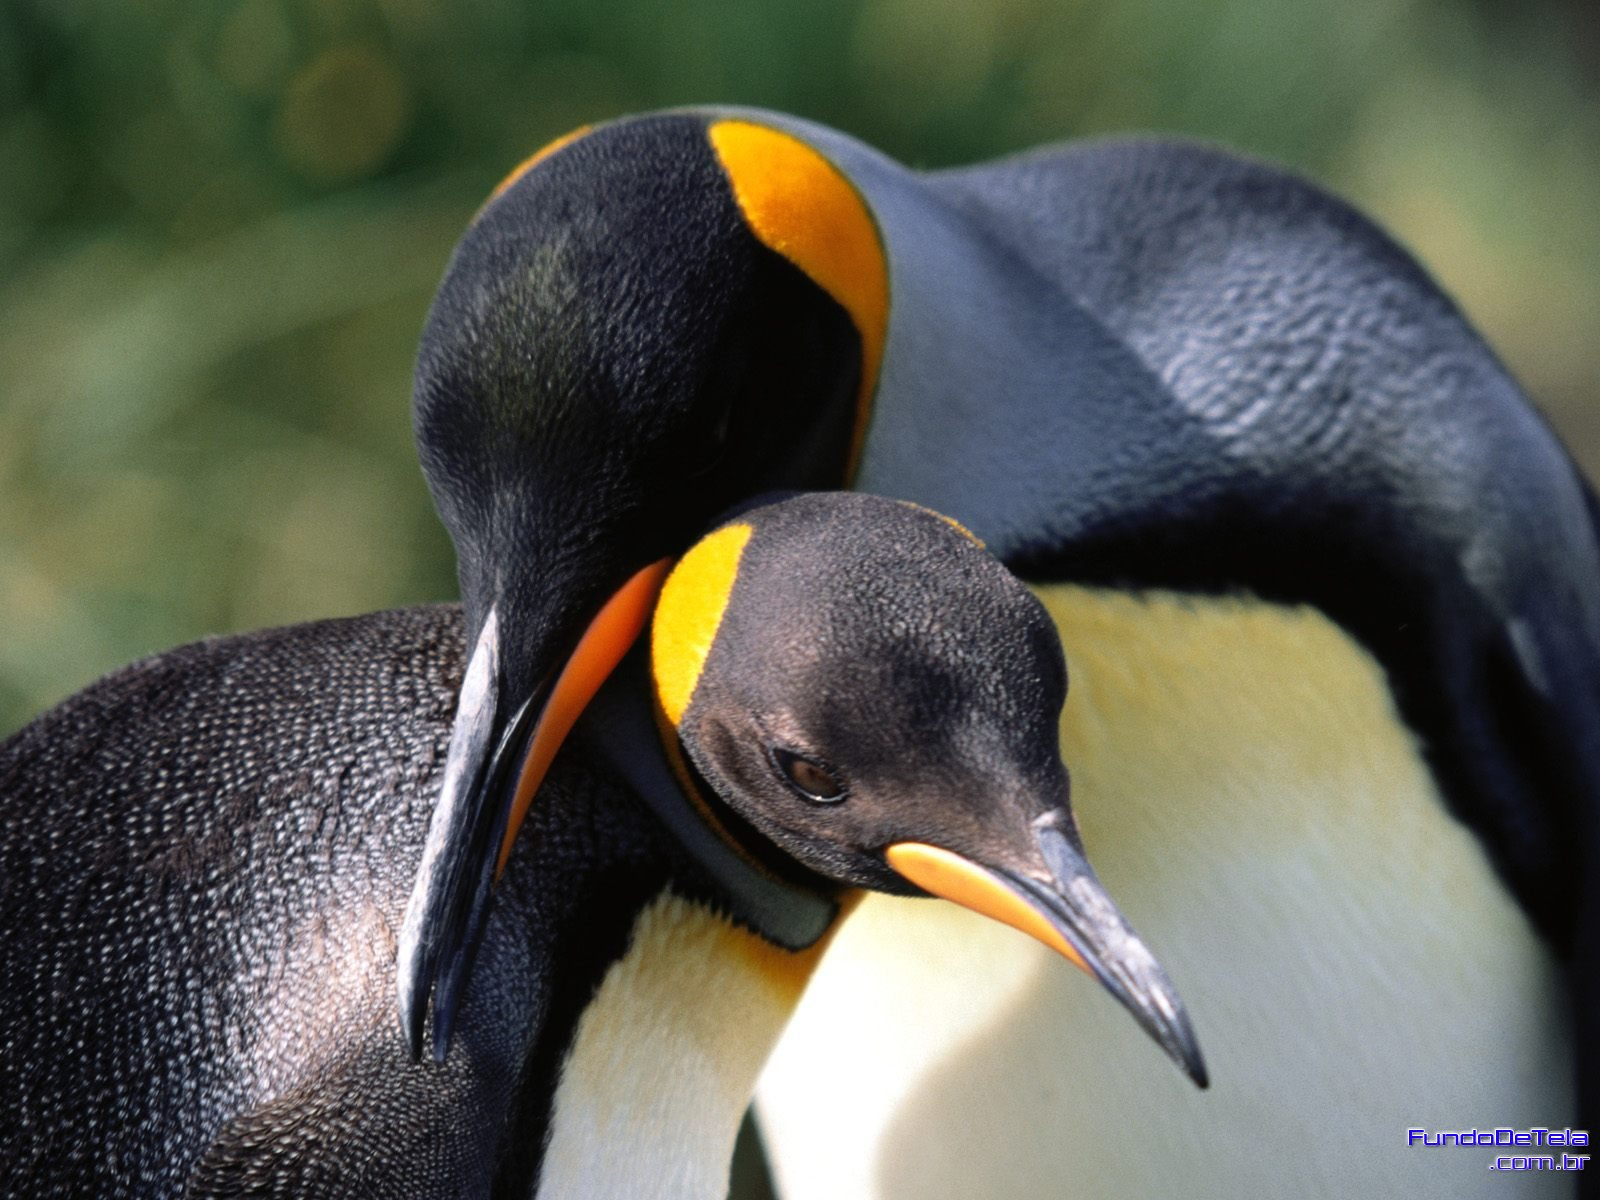 Penguins are certainly not shy about expressing their love. Like humans in successful relationships, they find that hanging out with their partner is the greatest joy of life.